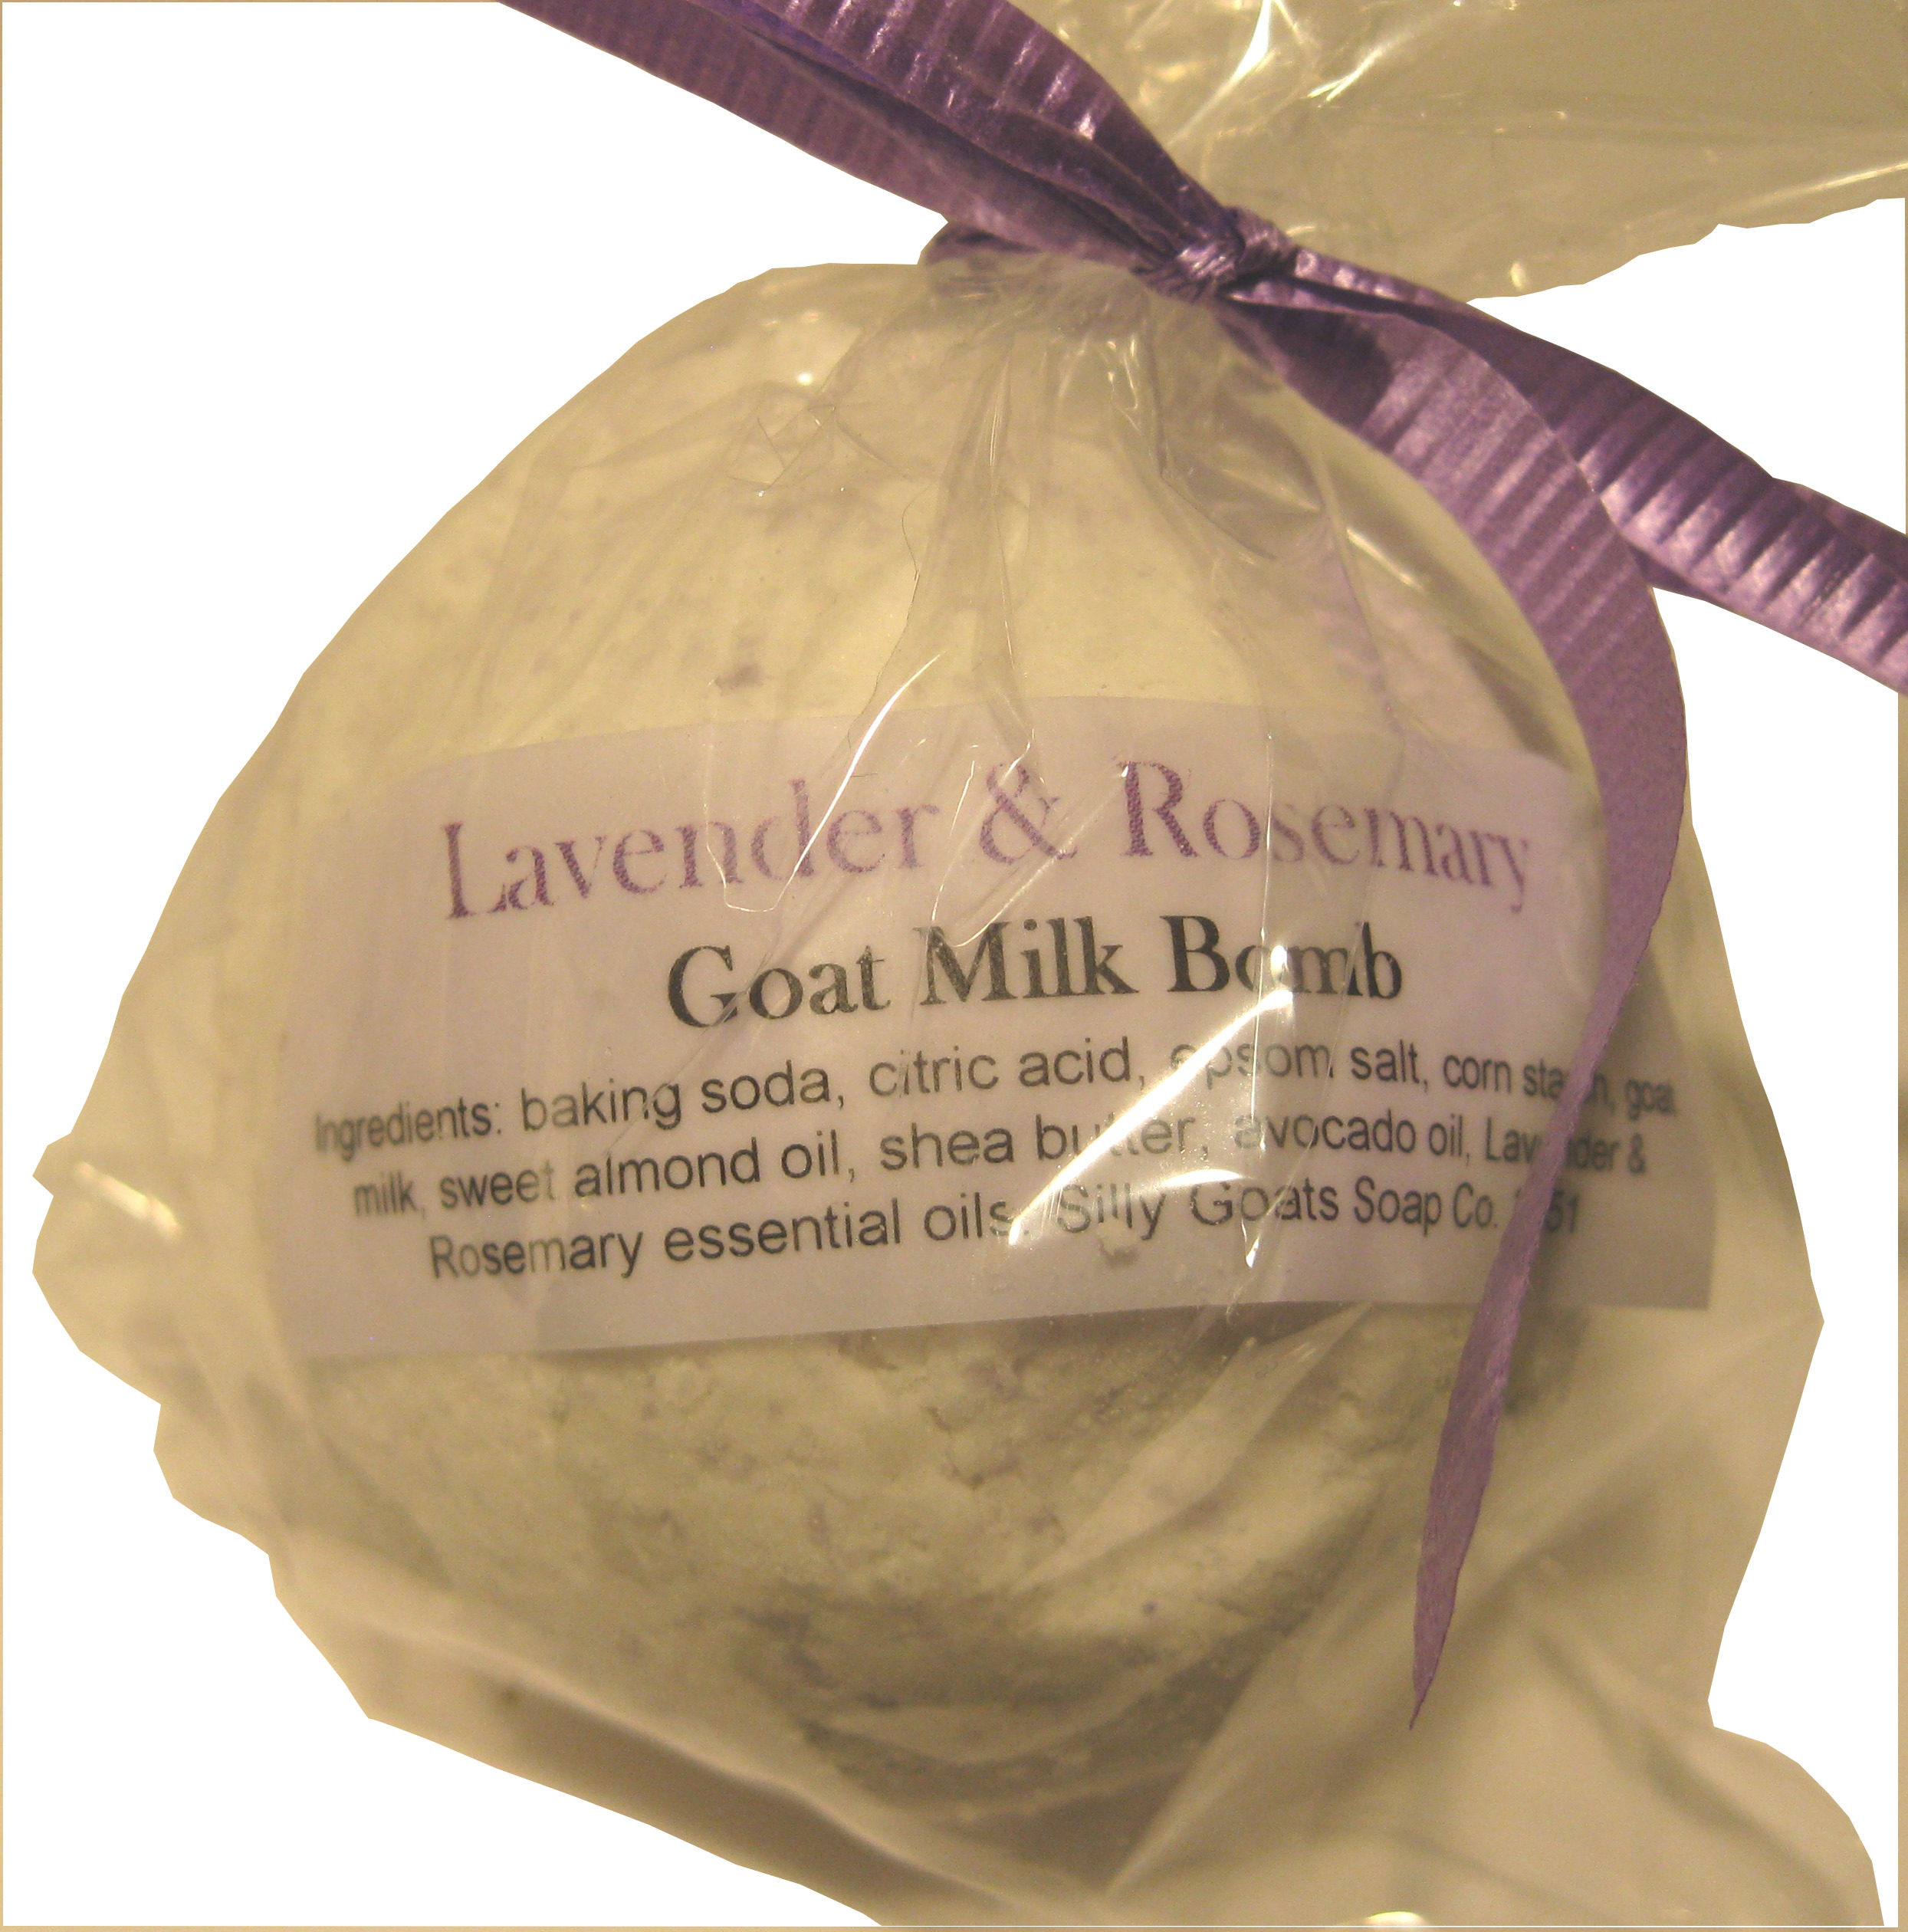 Lavender Rosemary Goat Milk Bath Bomb - Silly Goats Soap Company